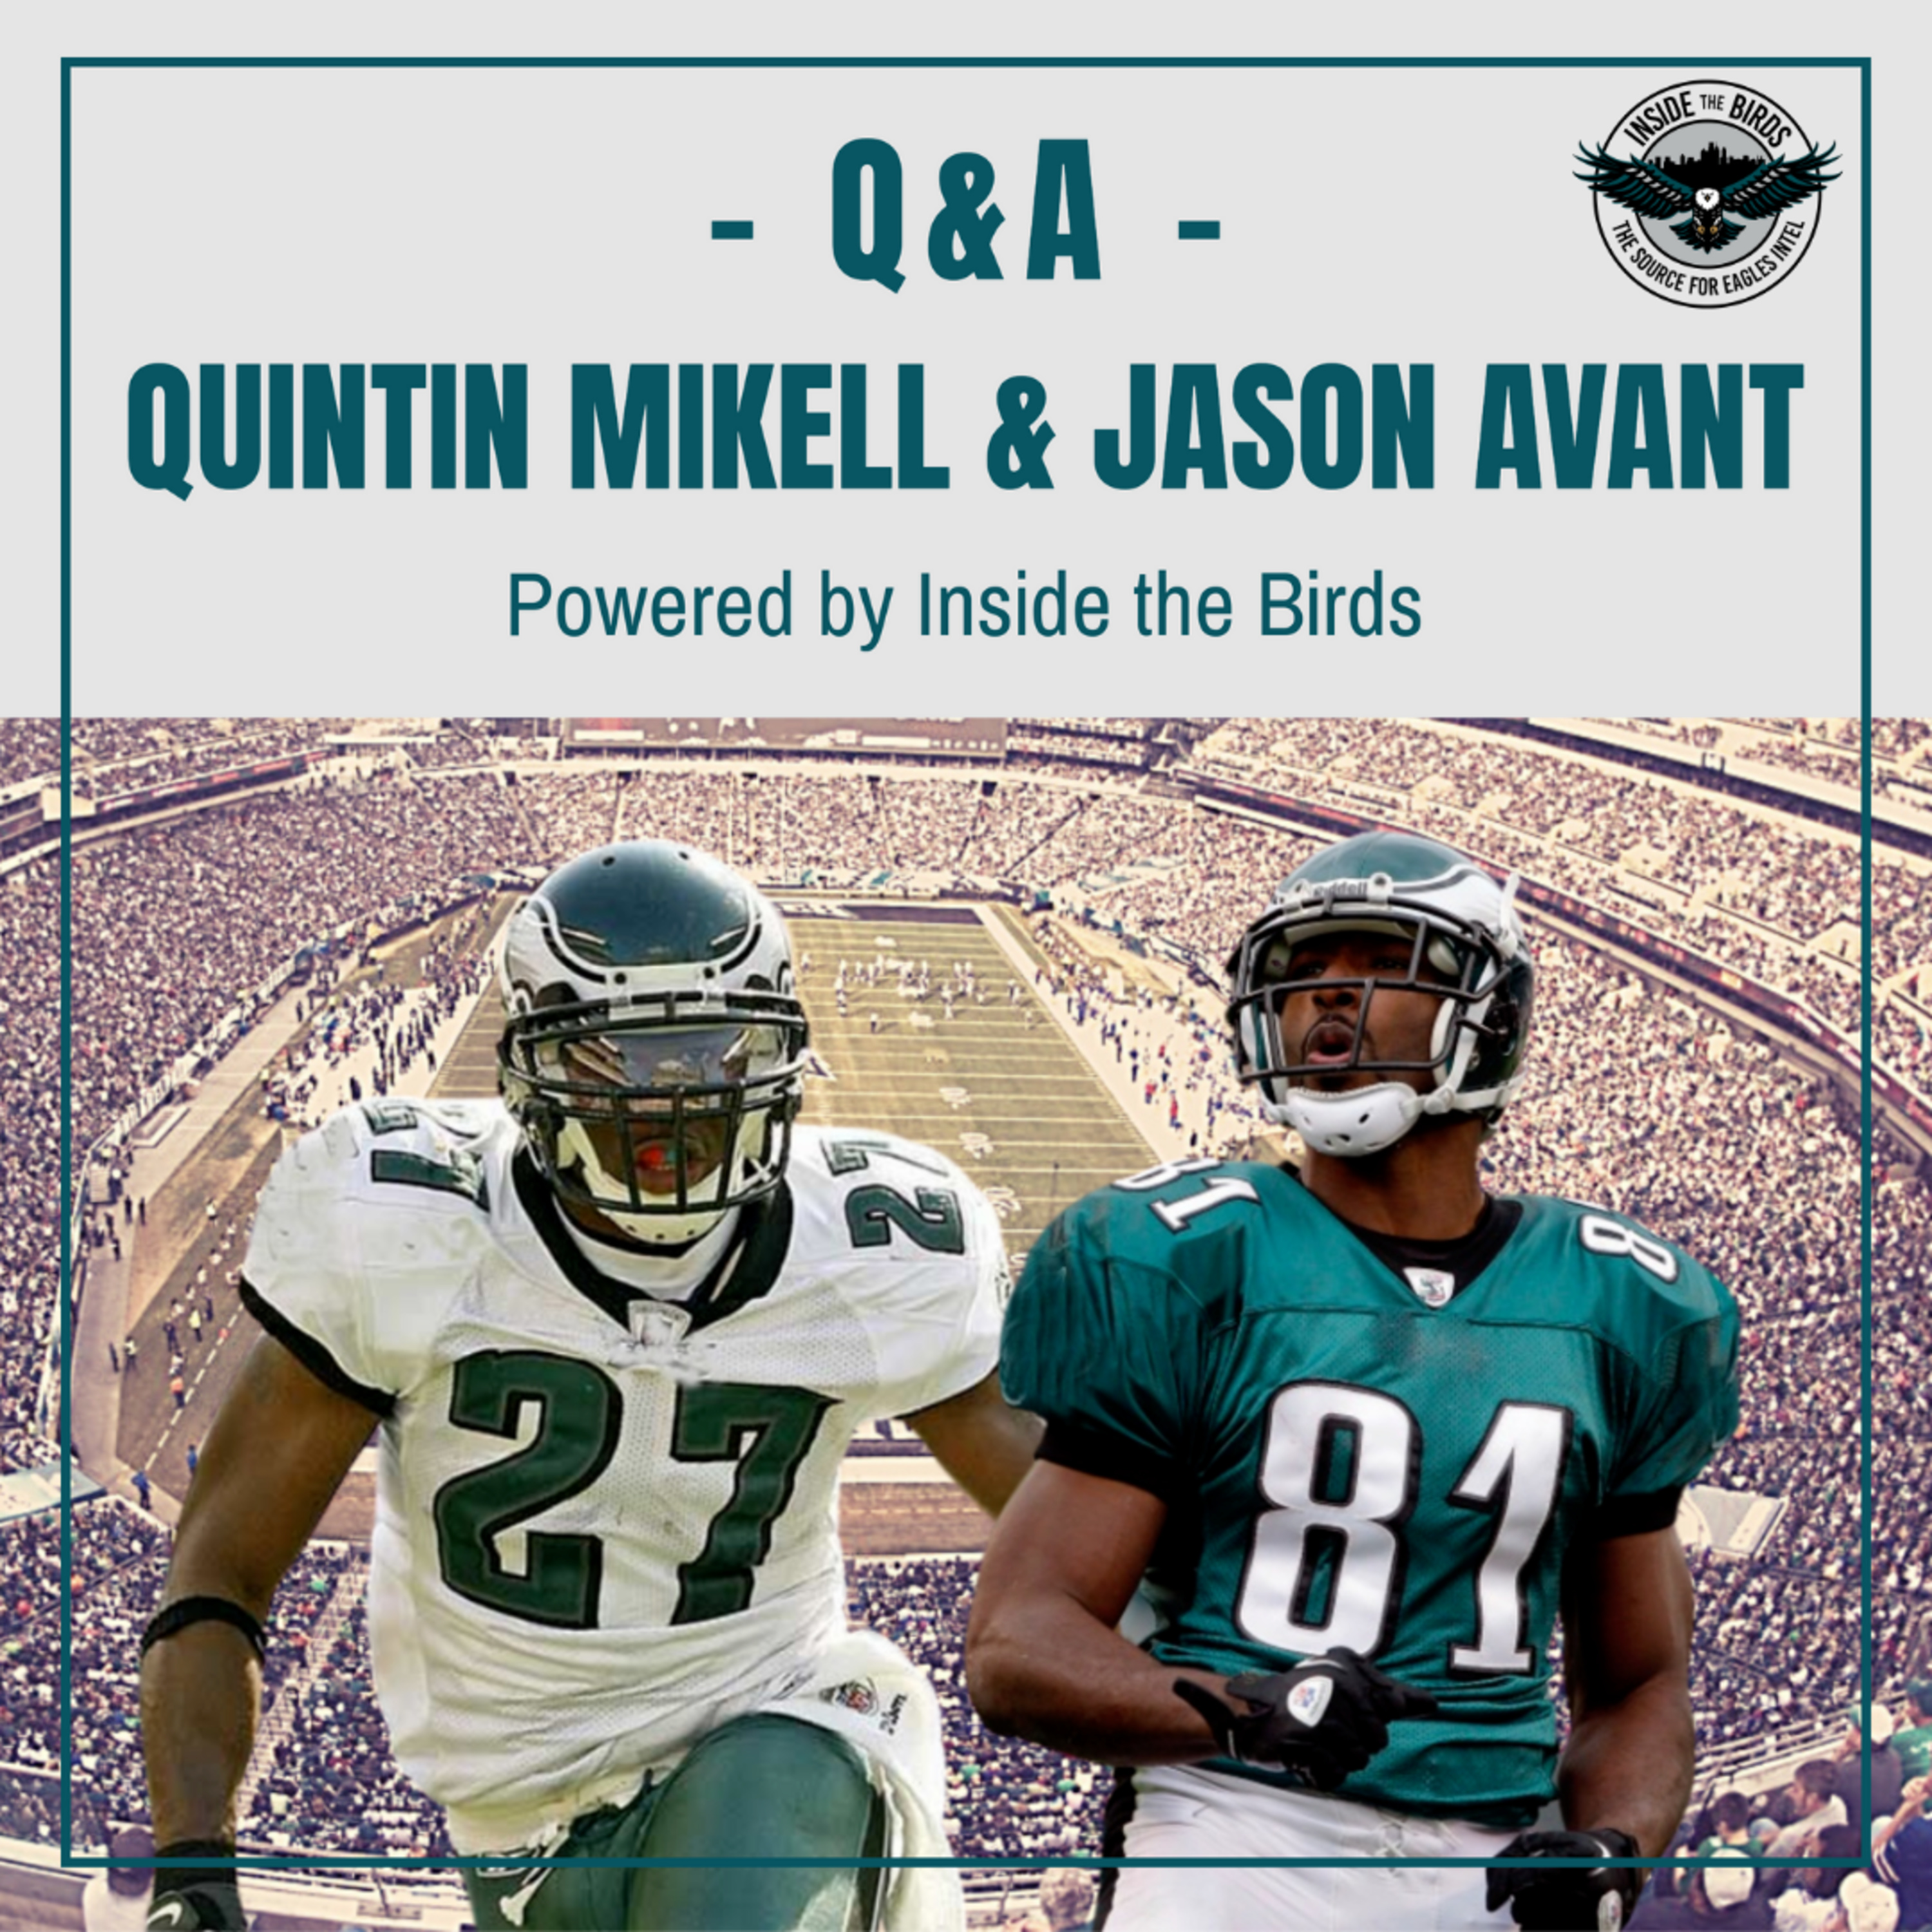 """Carson Vs. Ben """"No Comparison"""" 